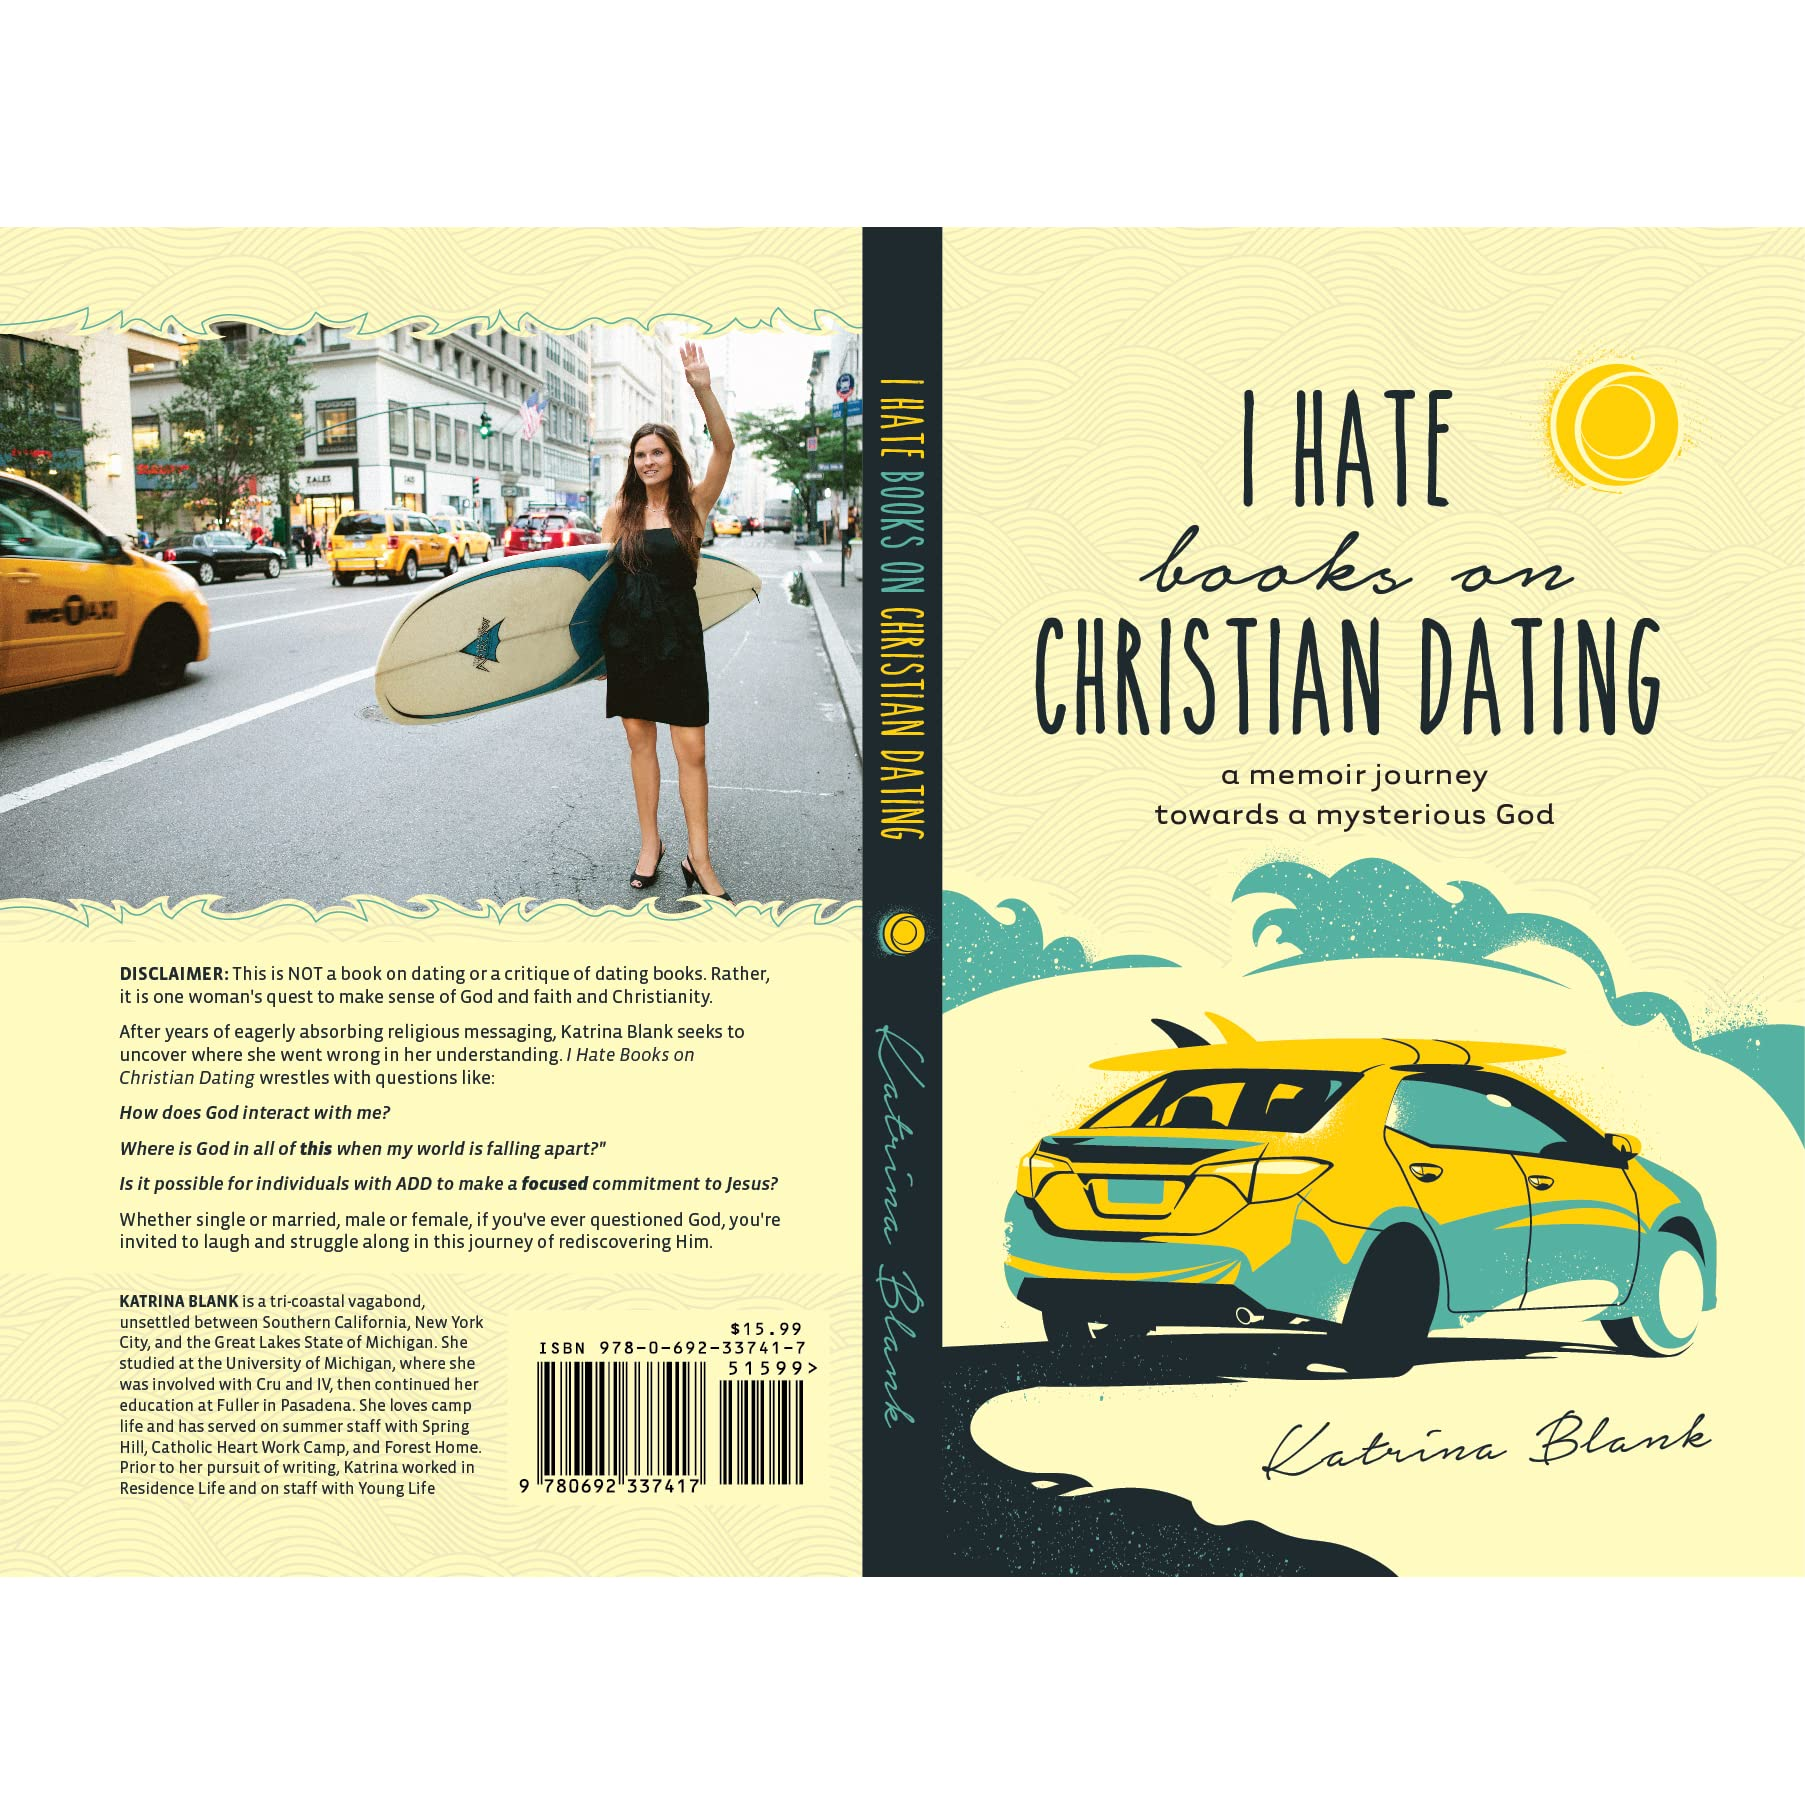 Books for dating christian